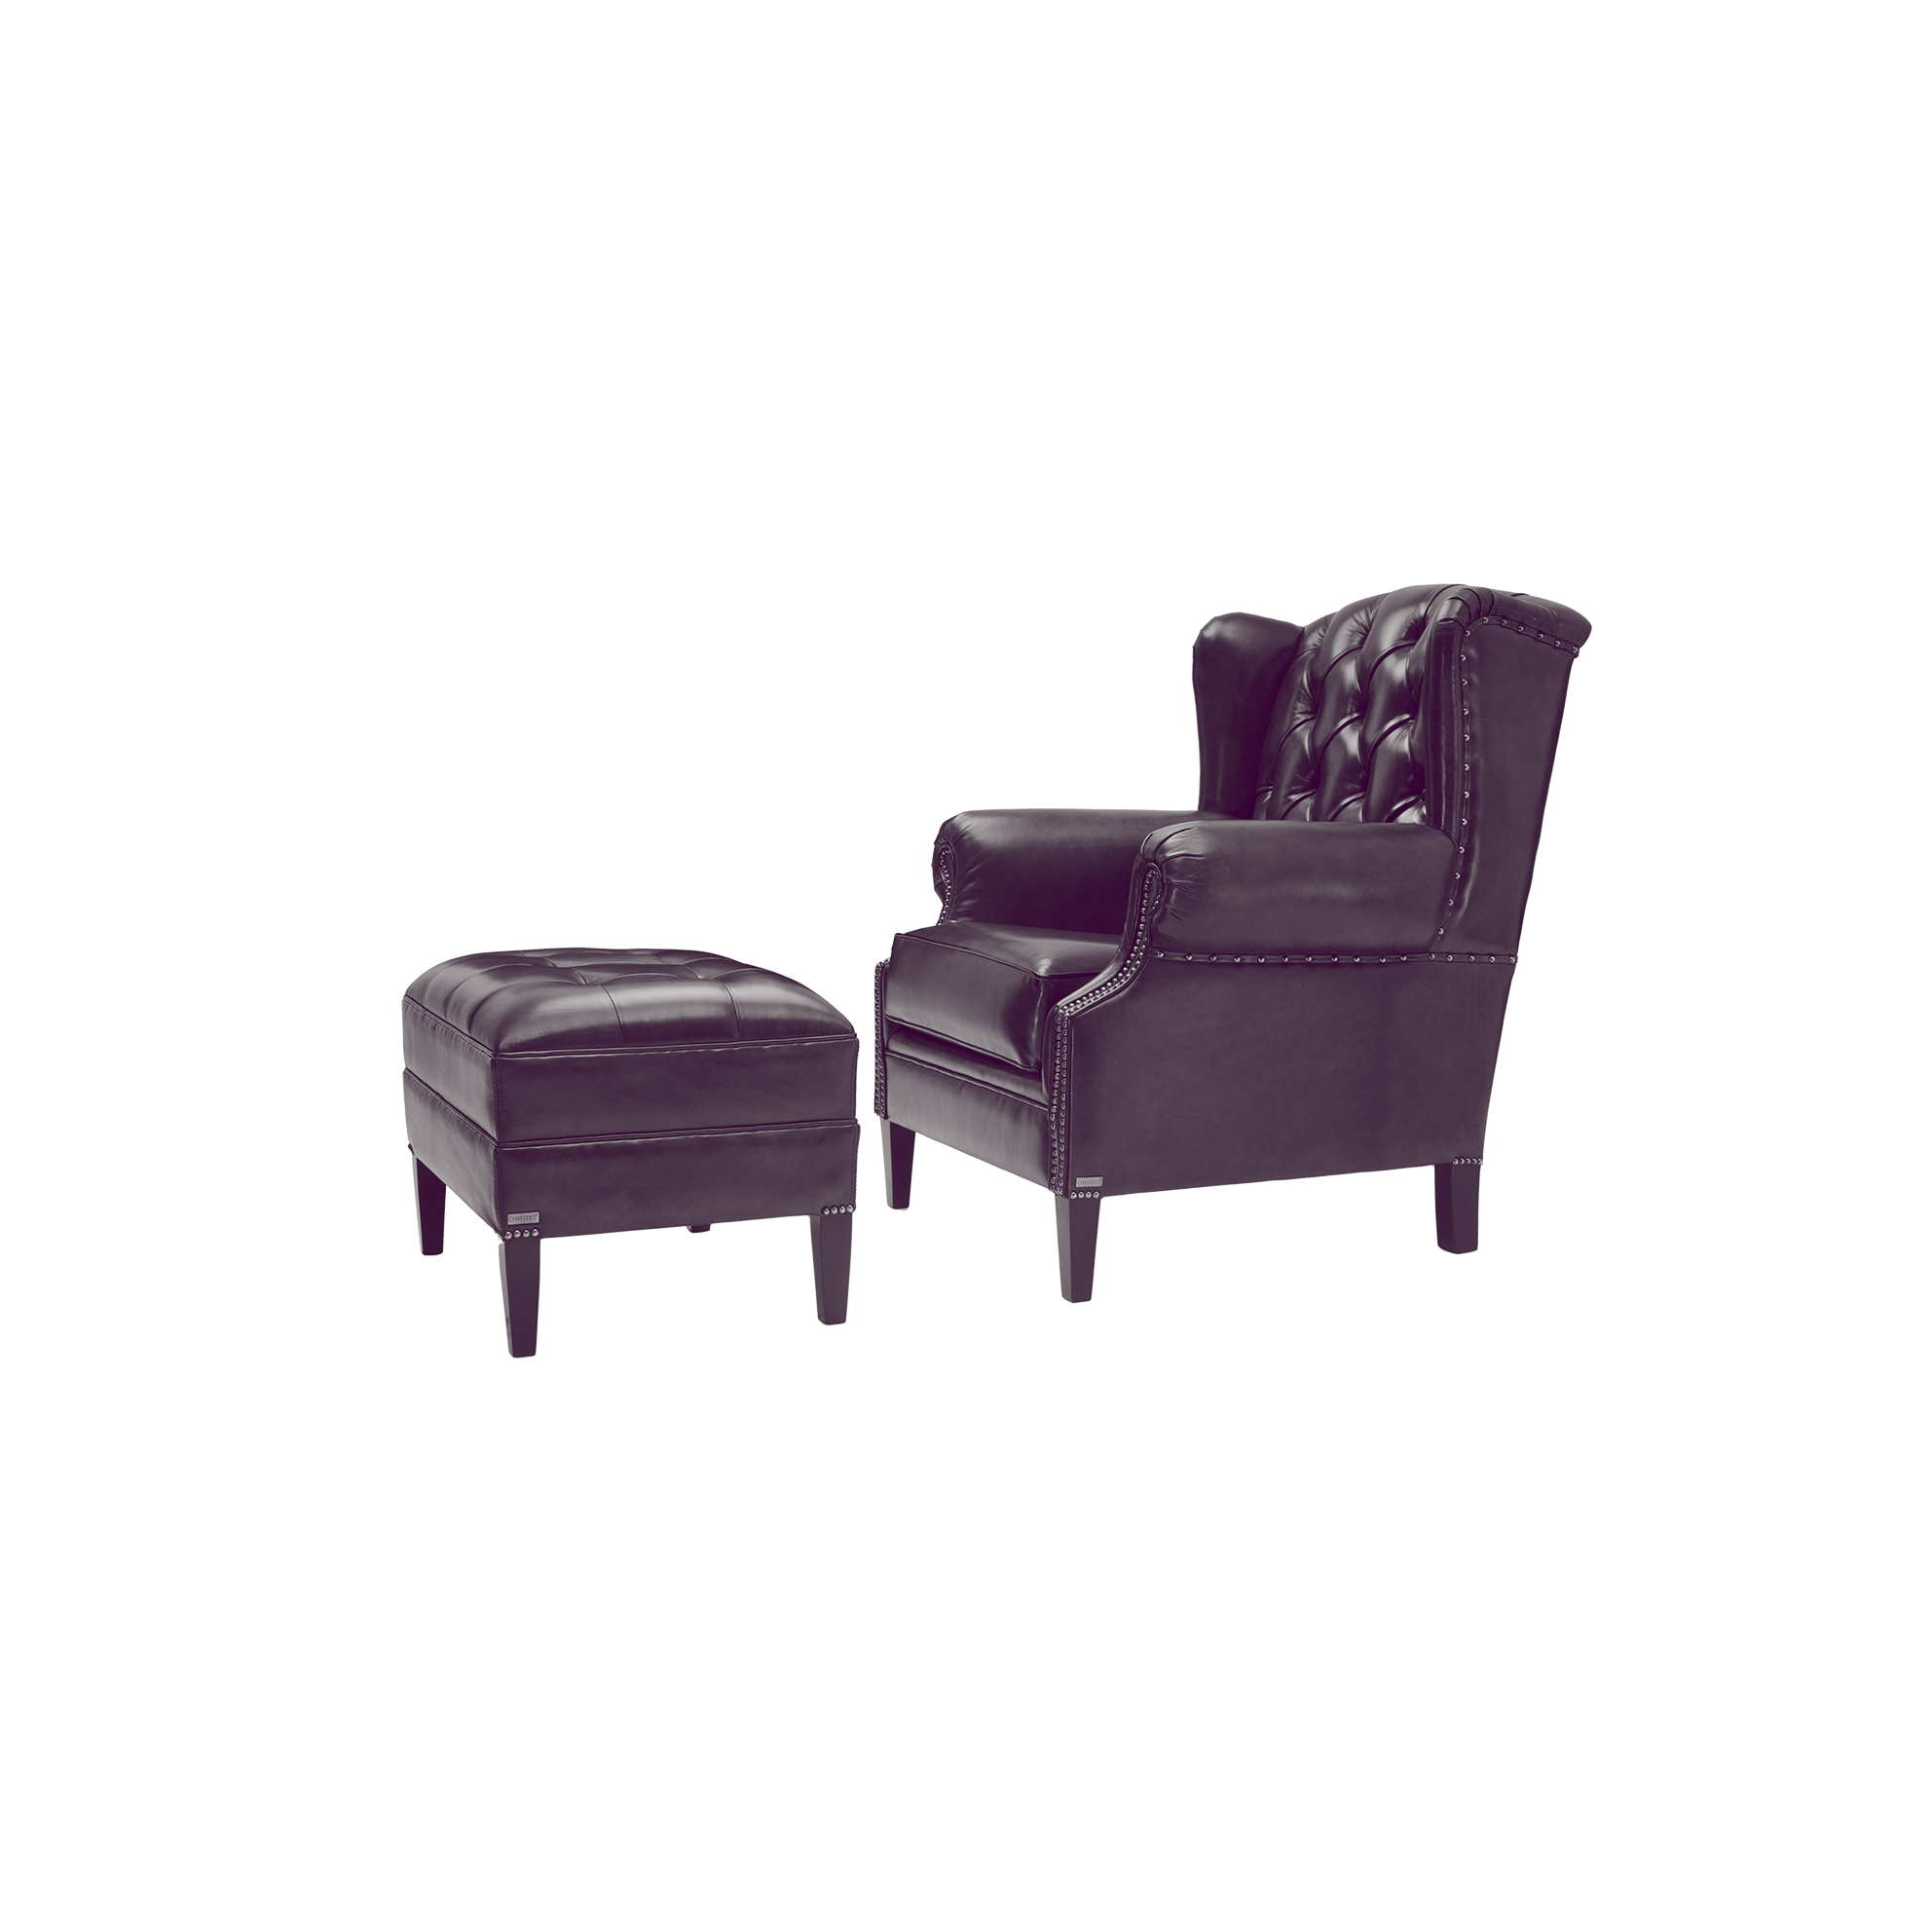 leather armchair single seater